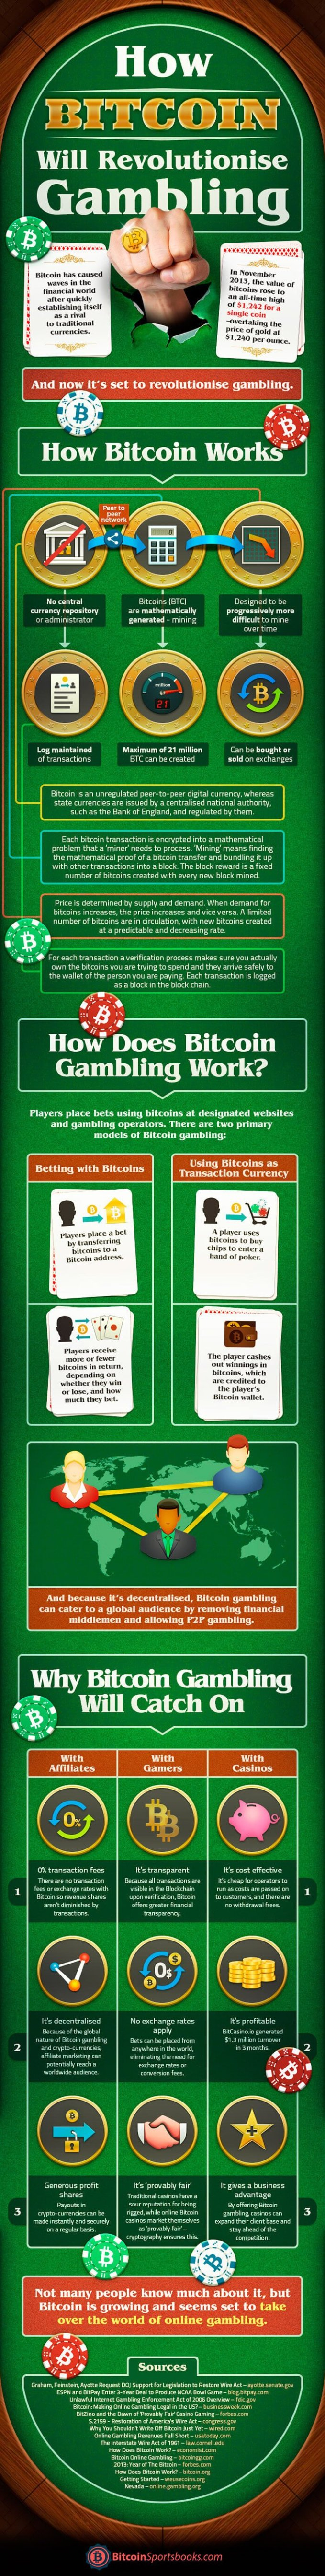 How Bitcoin Will Revolutionise Gambling [Infographic]